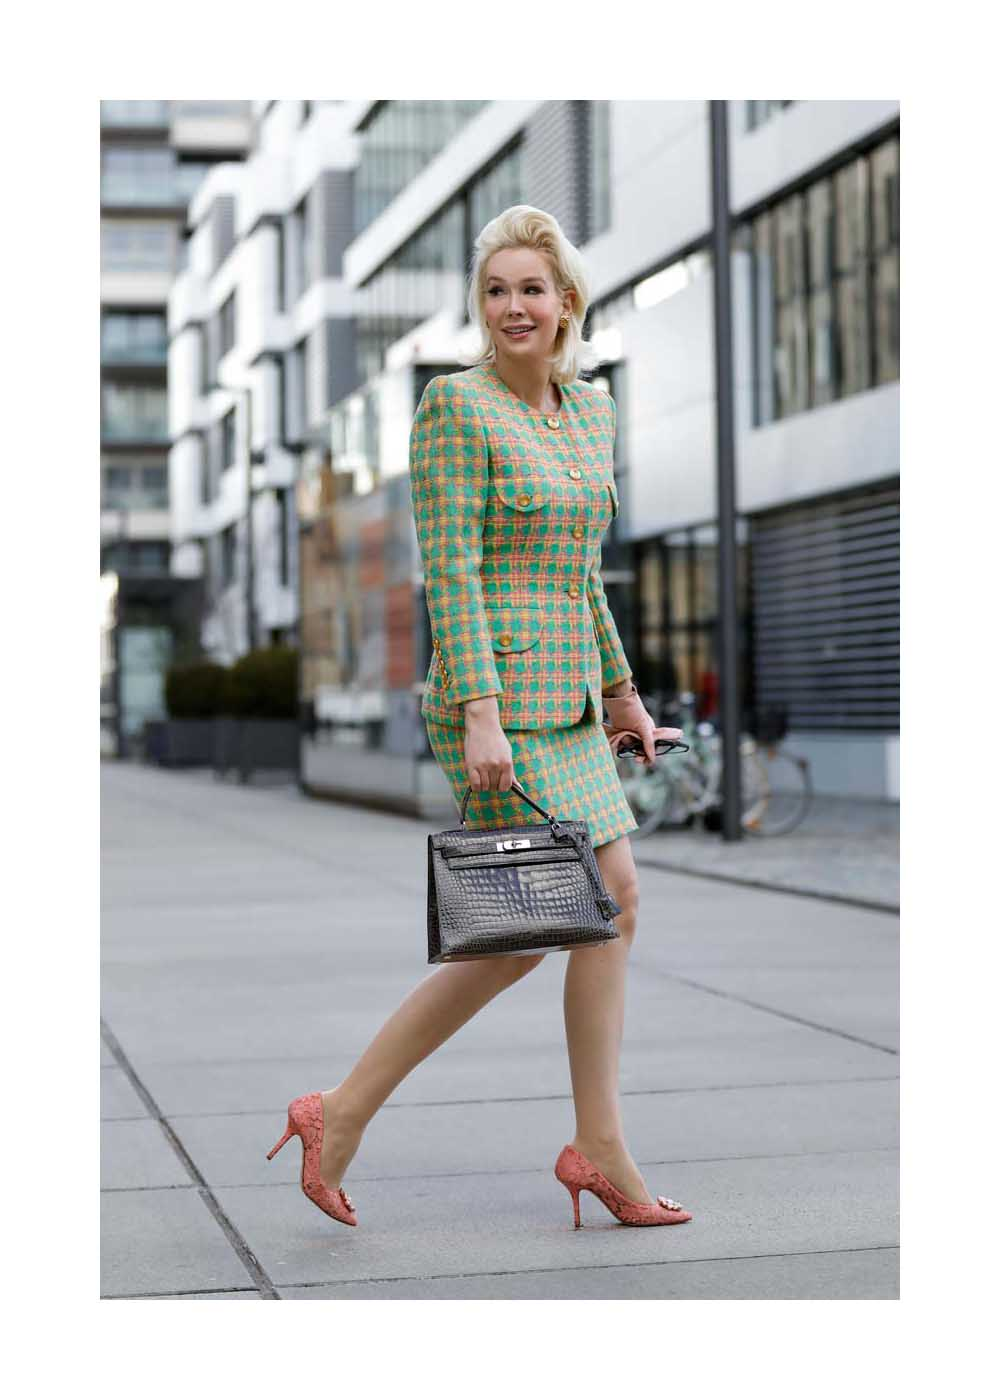 Ira Wolff Streetstyle Shooting In Cologne